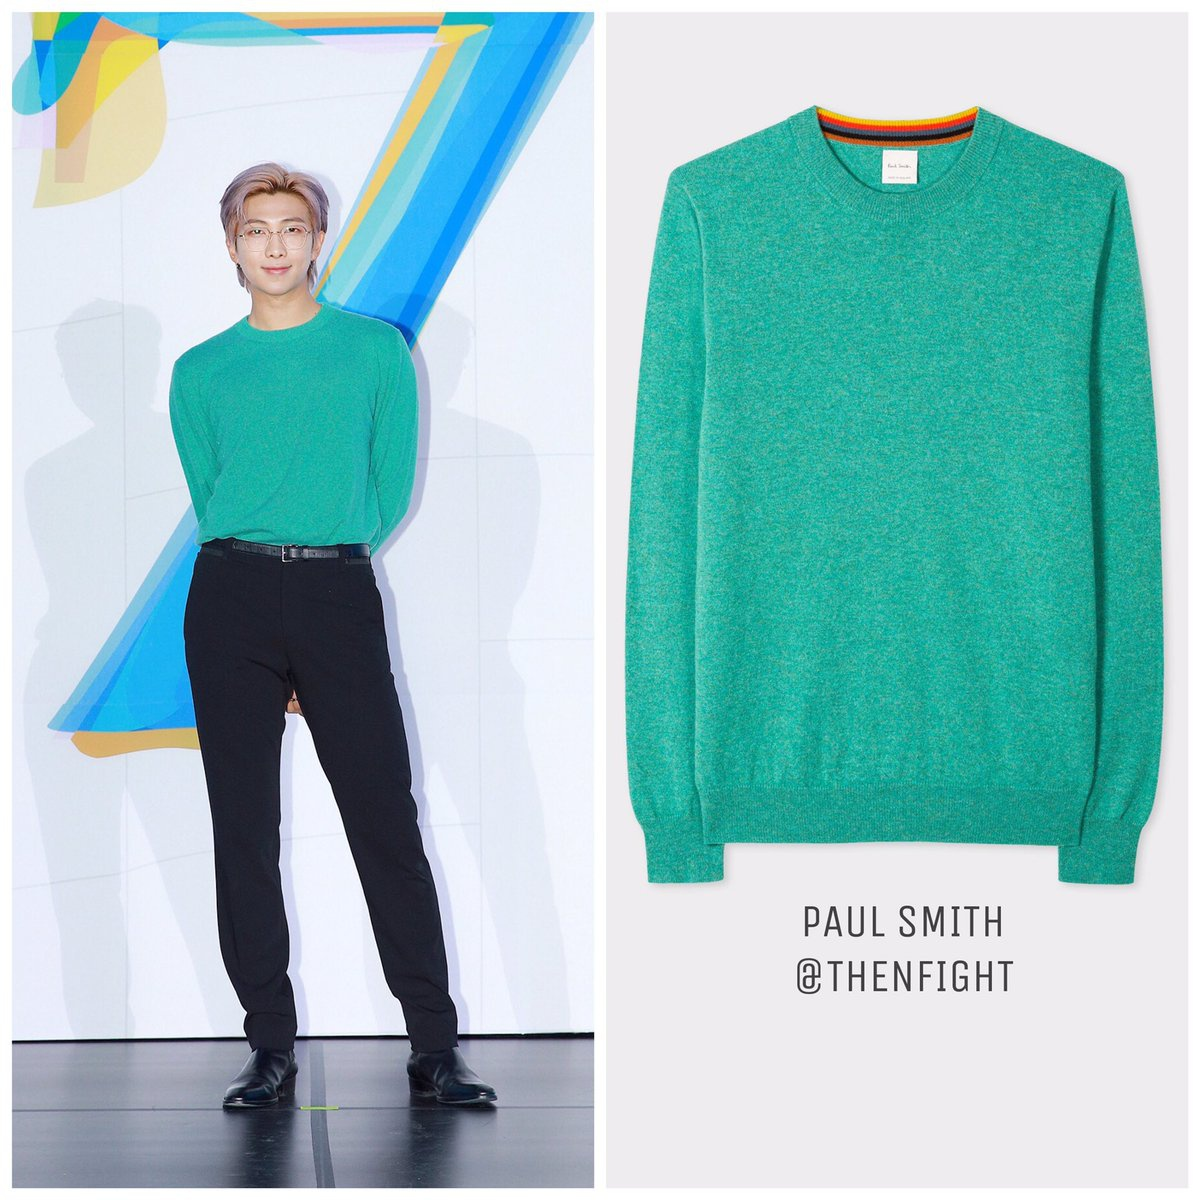 200224 BTS Global Press Conference 'MAP OF THE SOUL : 7' PAUL SMITH Men's Turquoise Cashmere Sweater